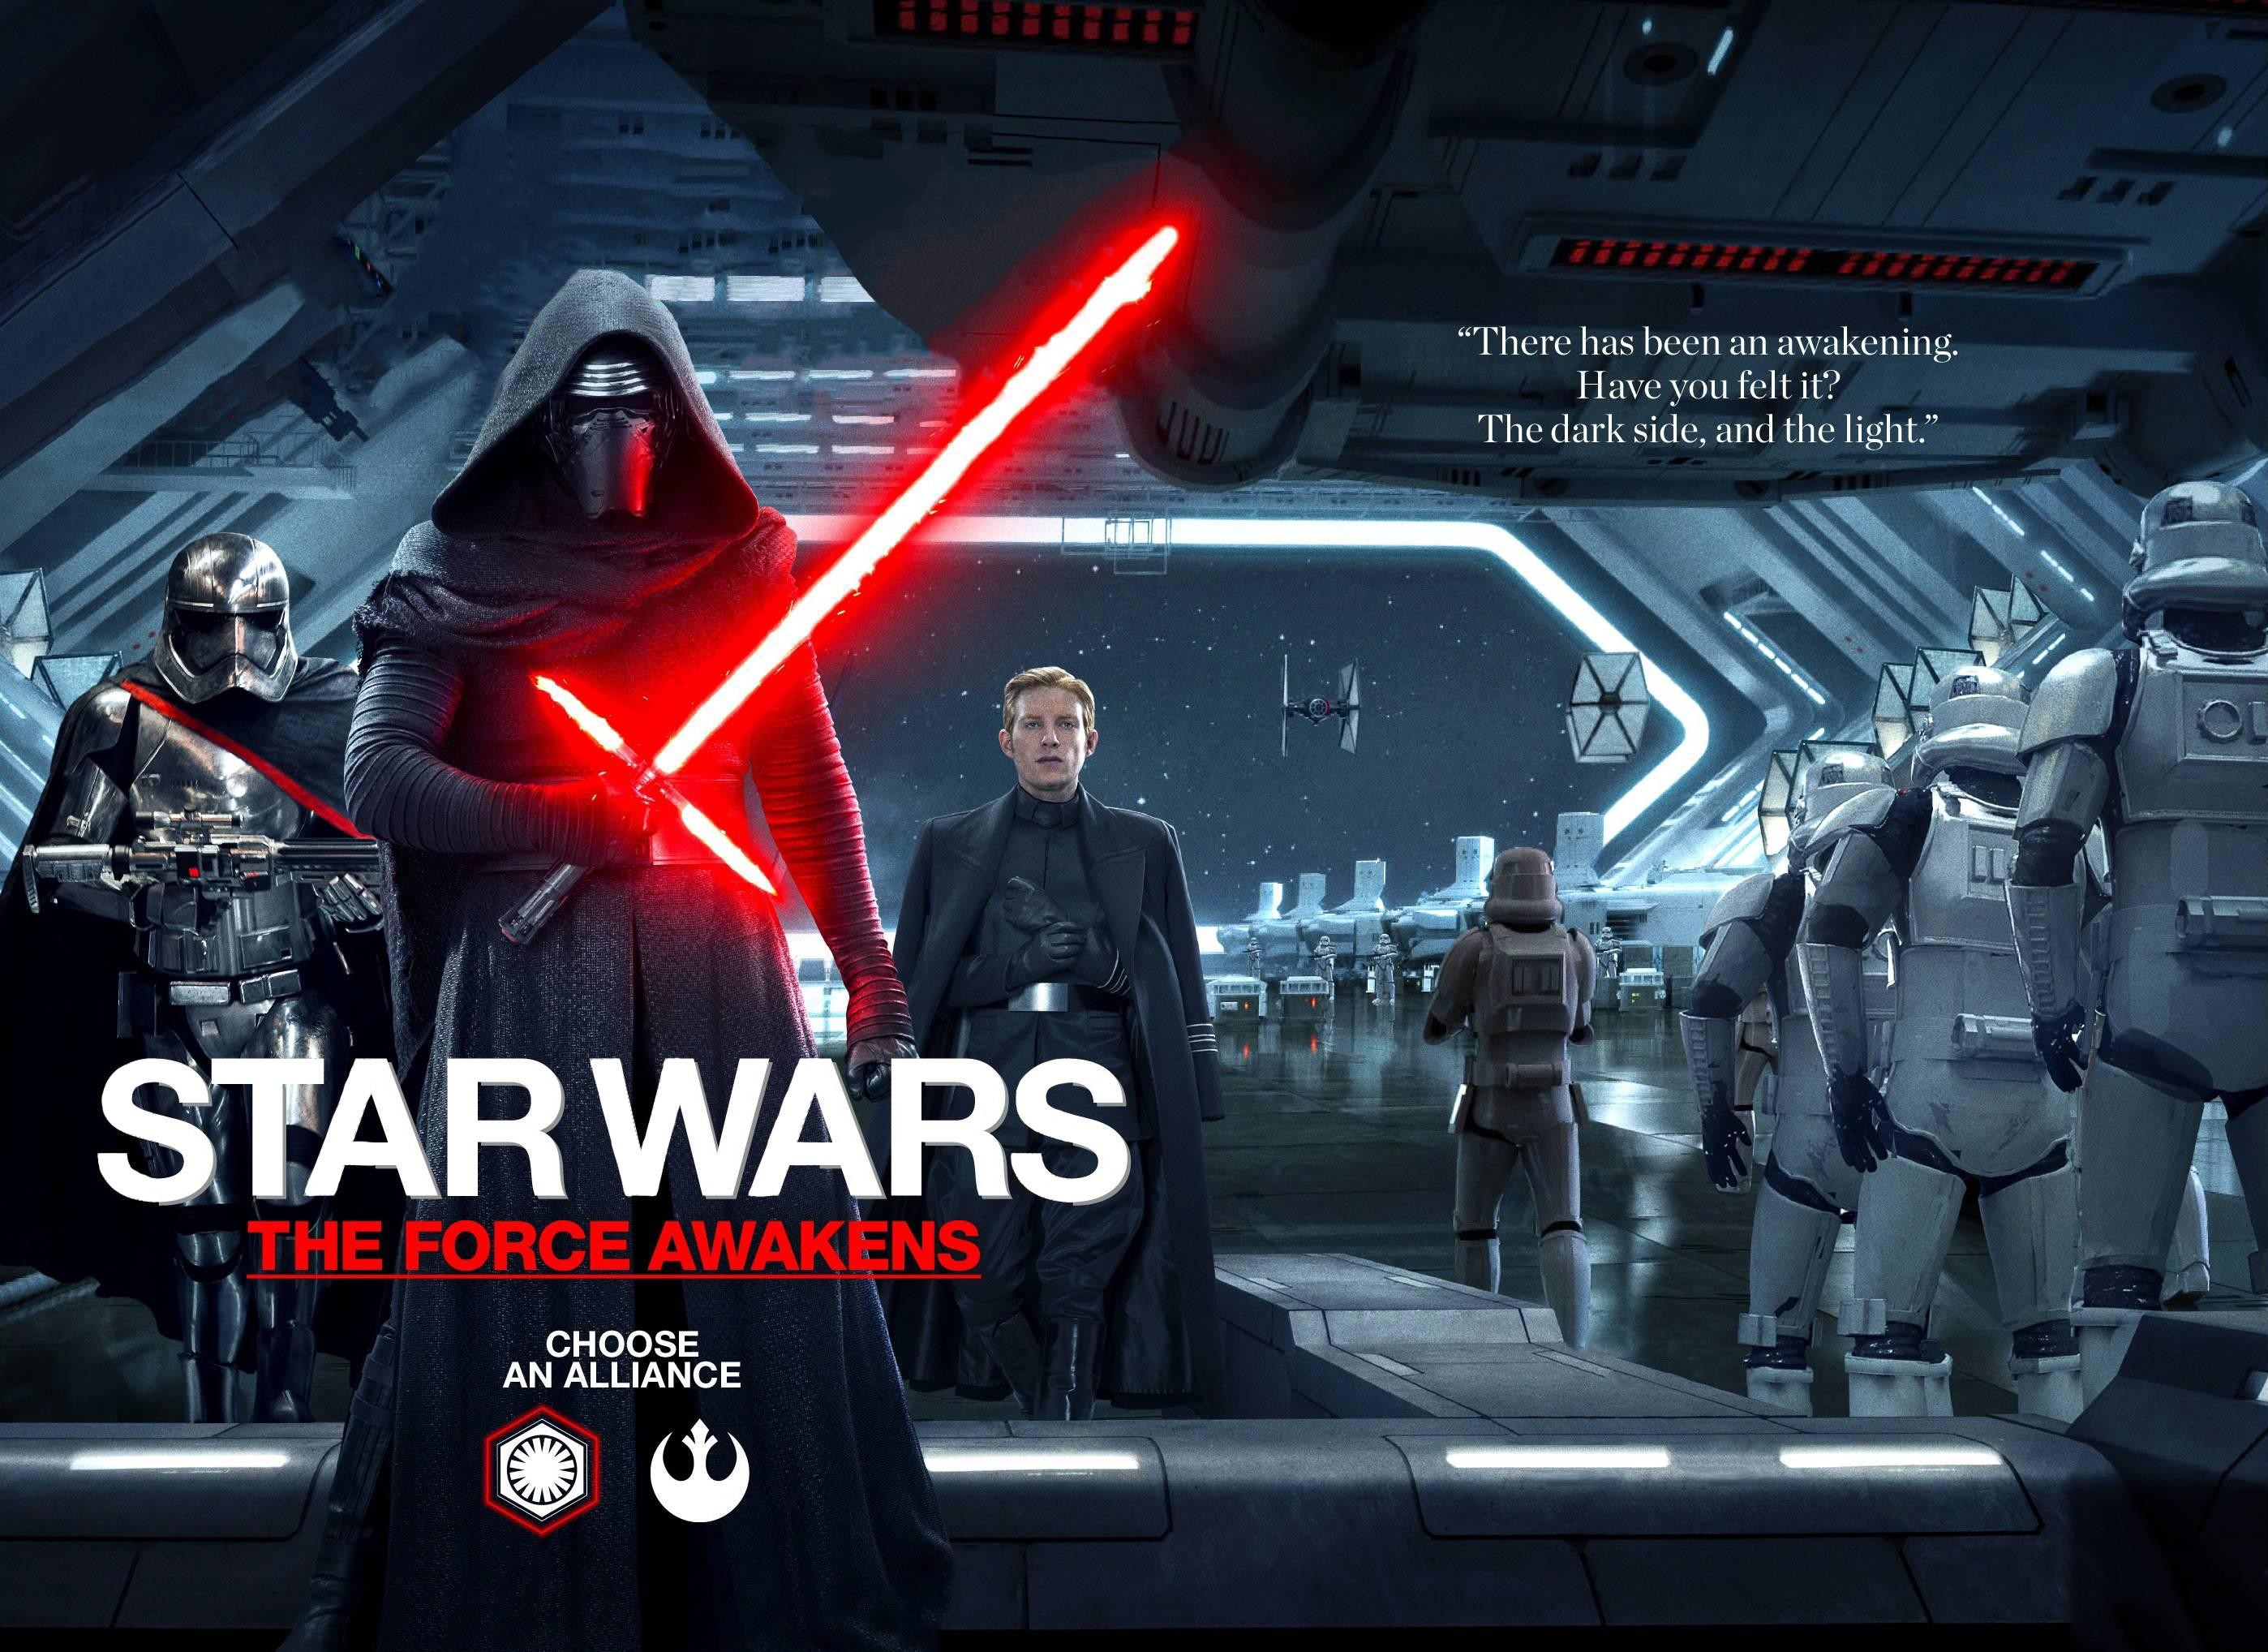 Star Wars: The Force Awakens Empire Magazine First Order Cover (Wallpaper/Poster  Edit)